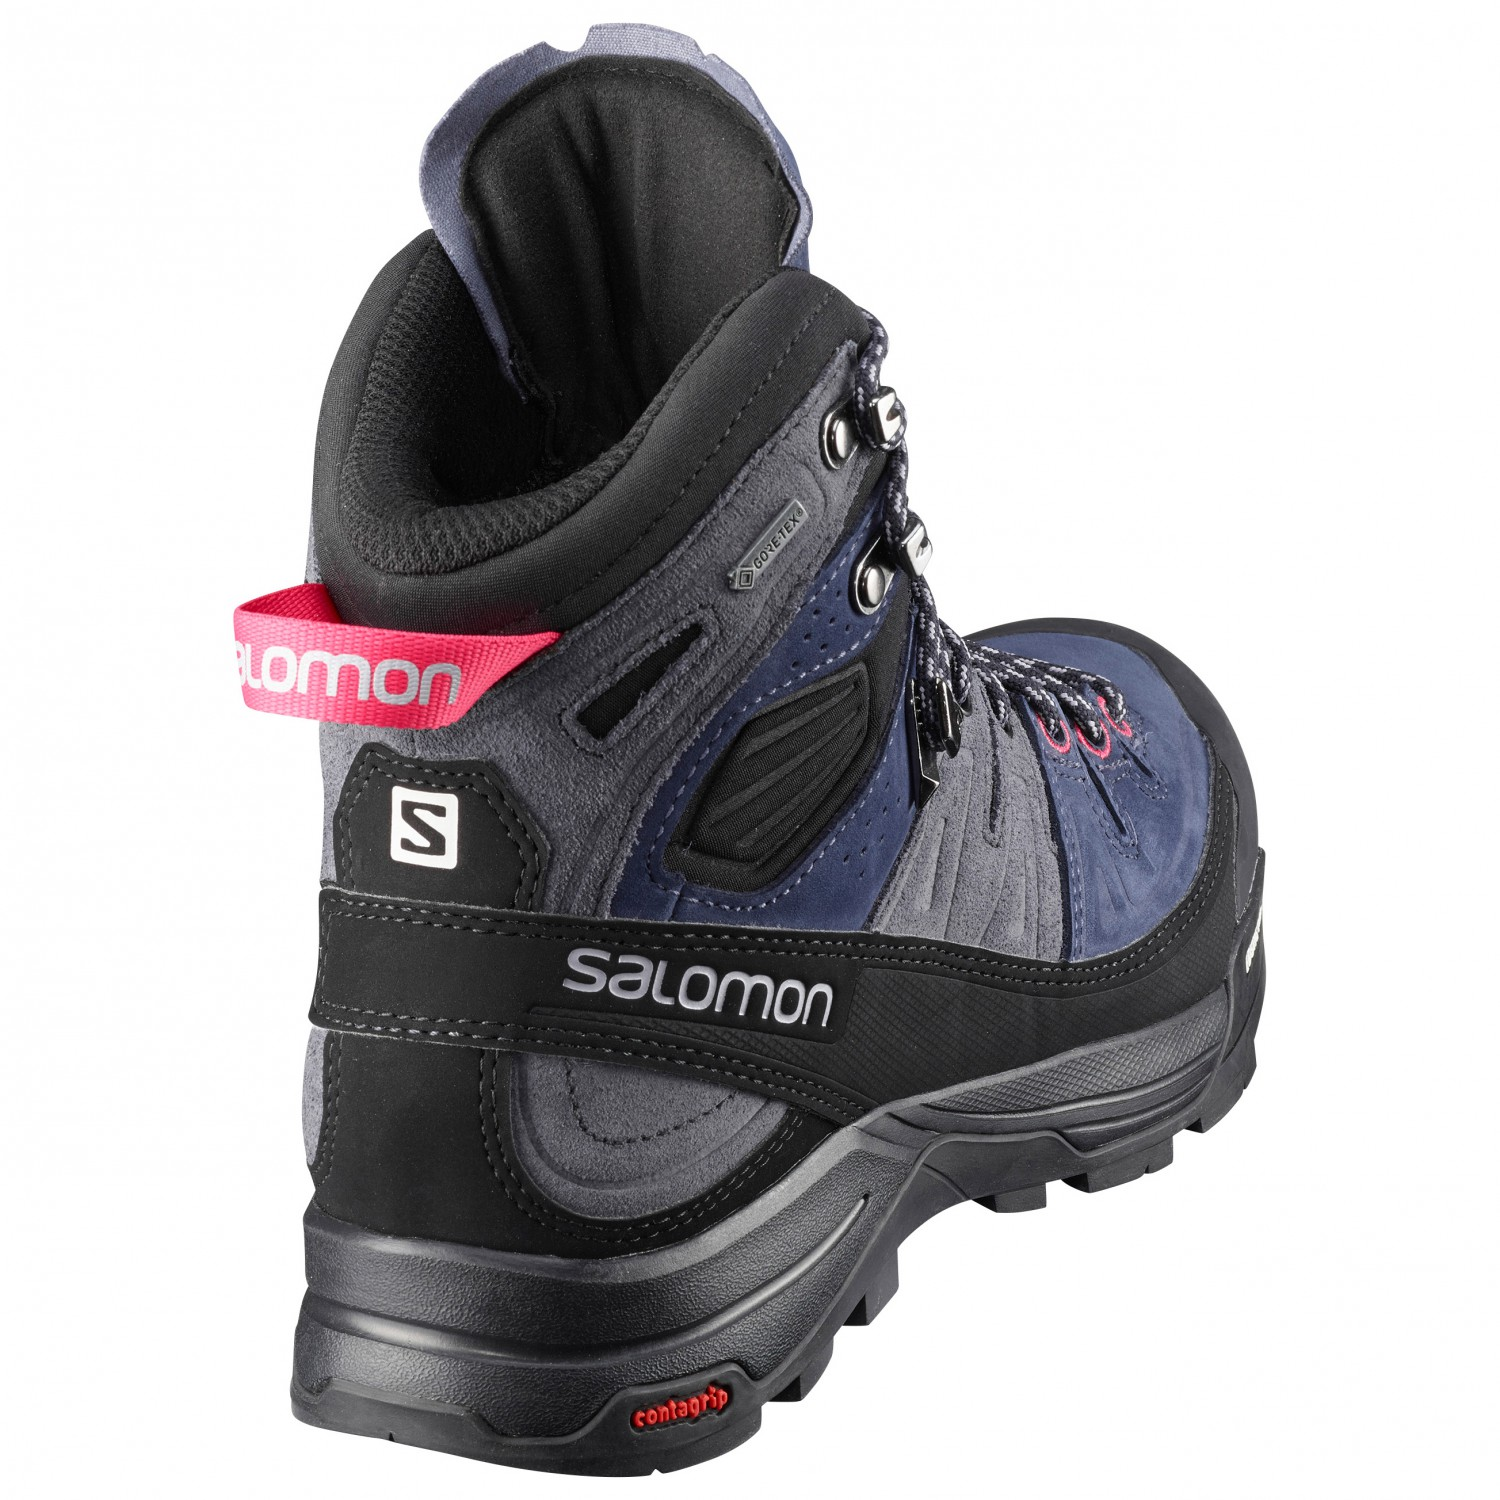 Salomon X Alp High Leather Gtx Mountaineering Boots